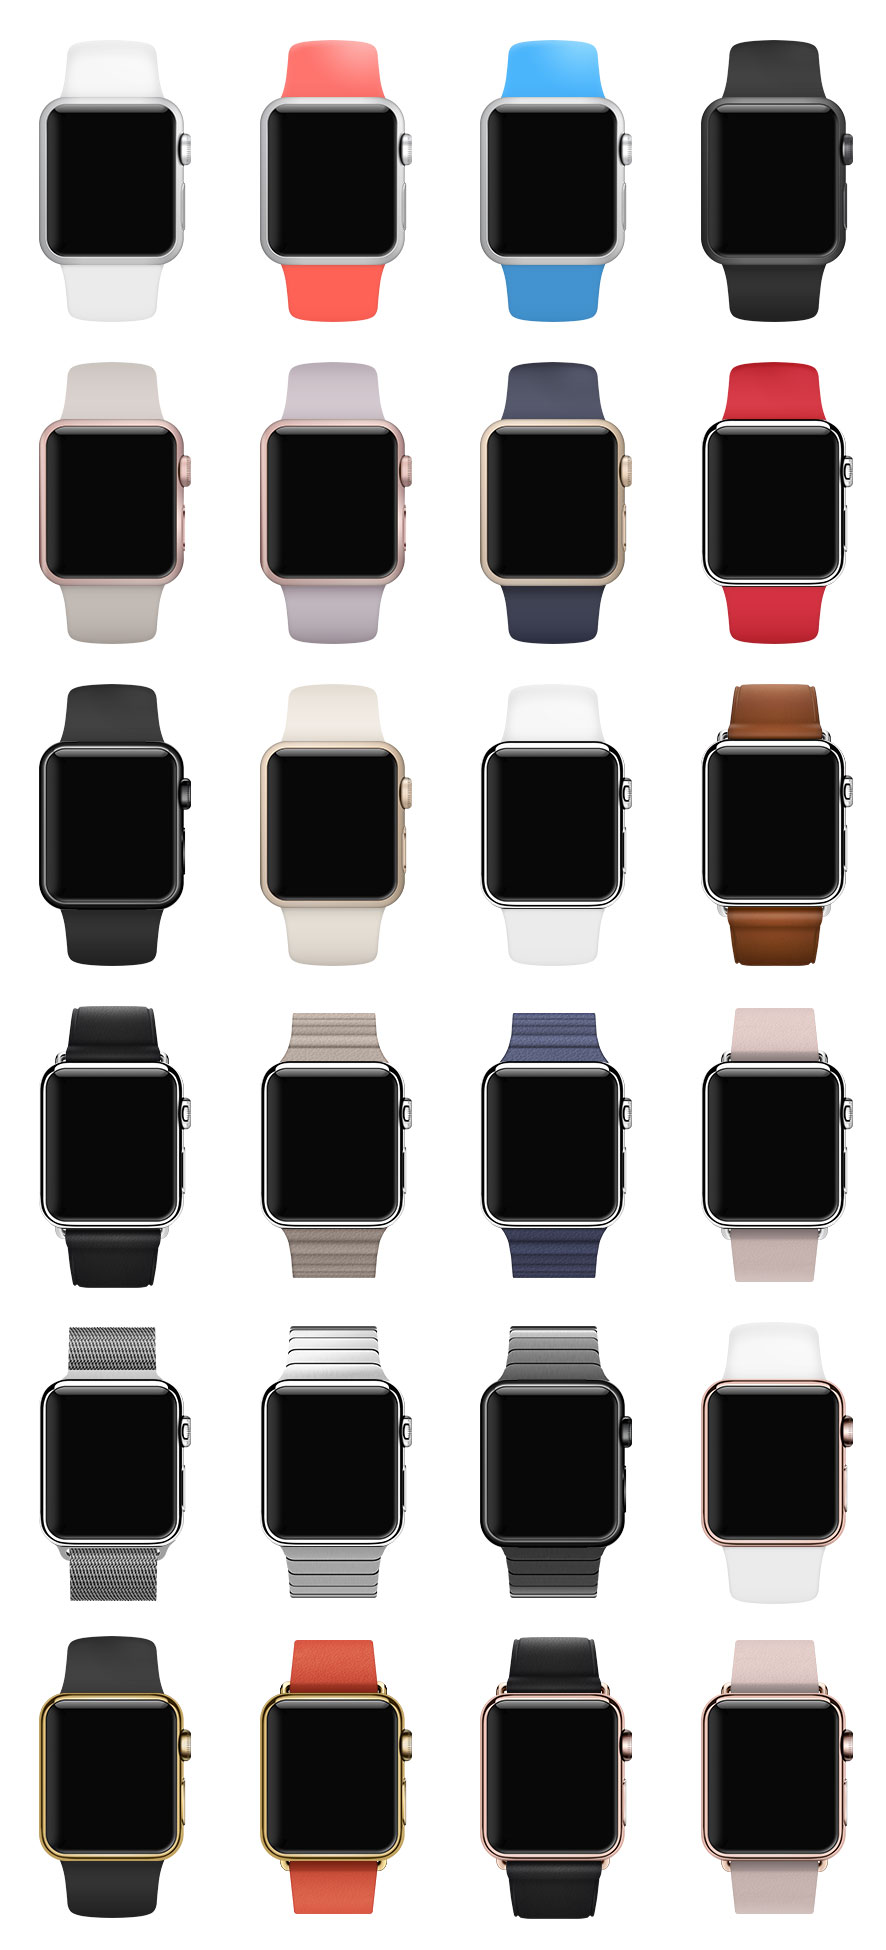 apple watch mock-up